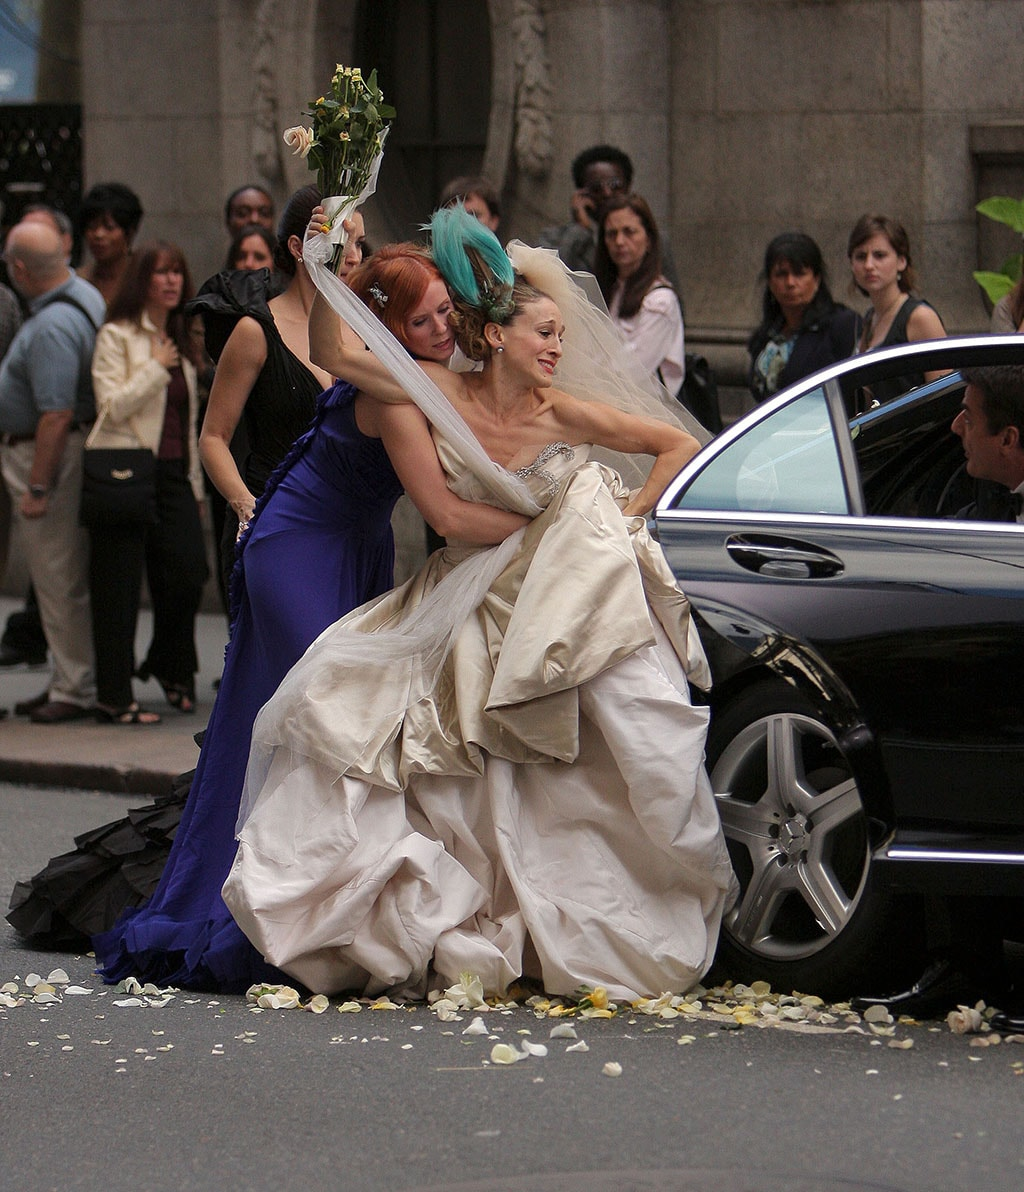 Don't Offend the Bride, What Not to